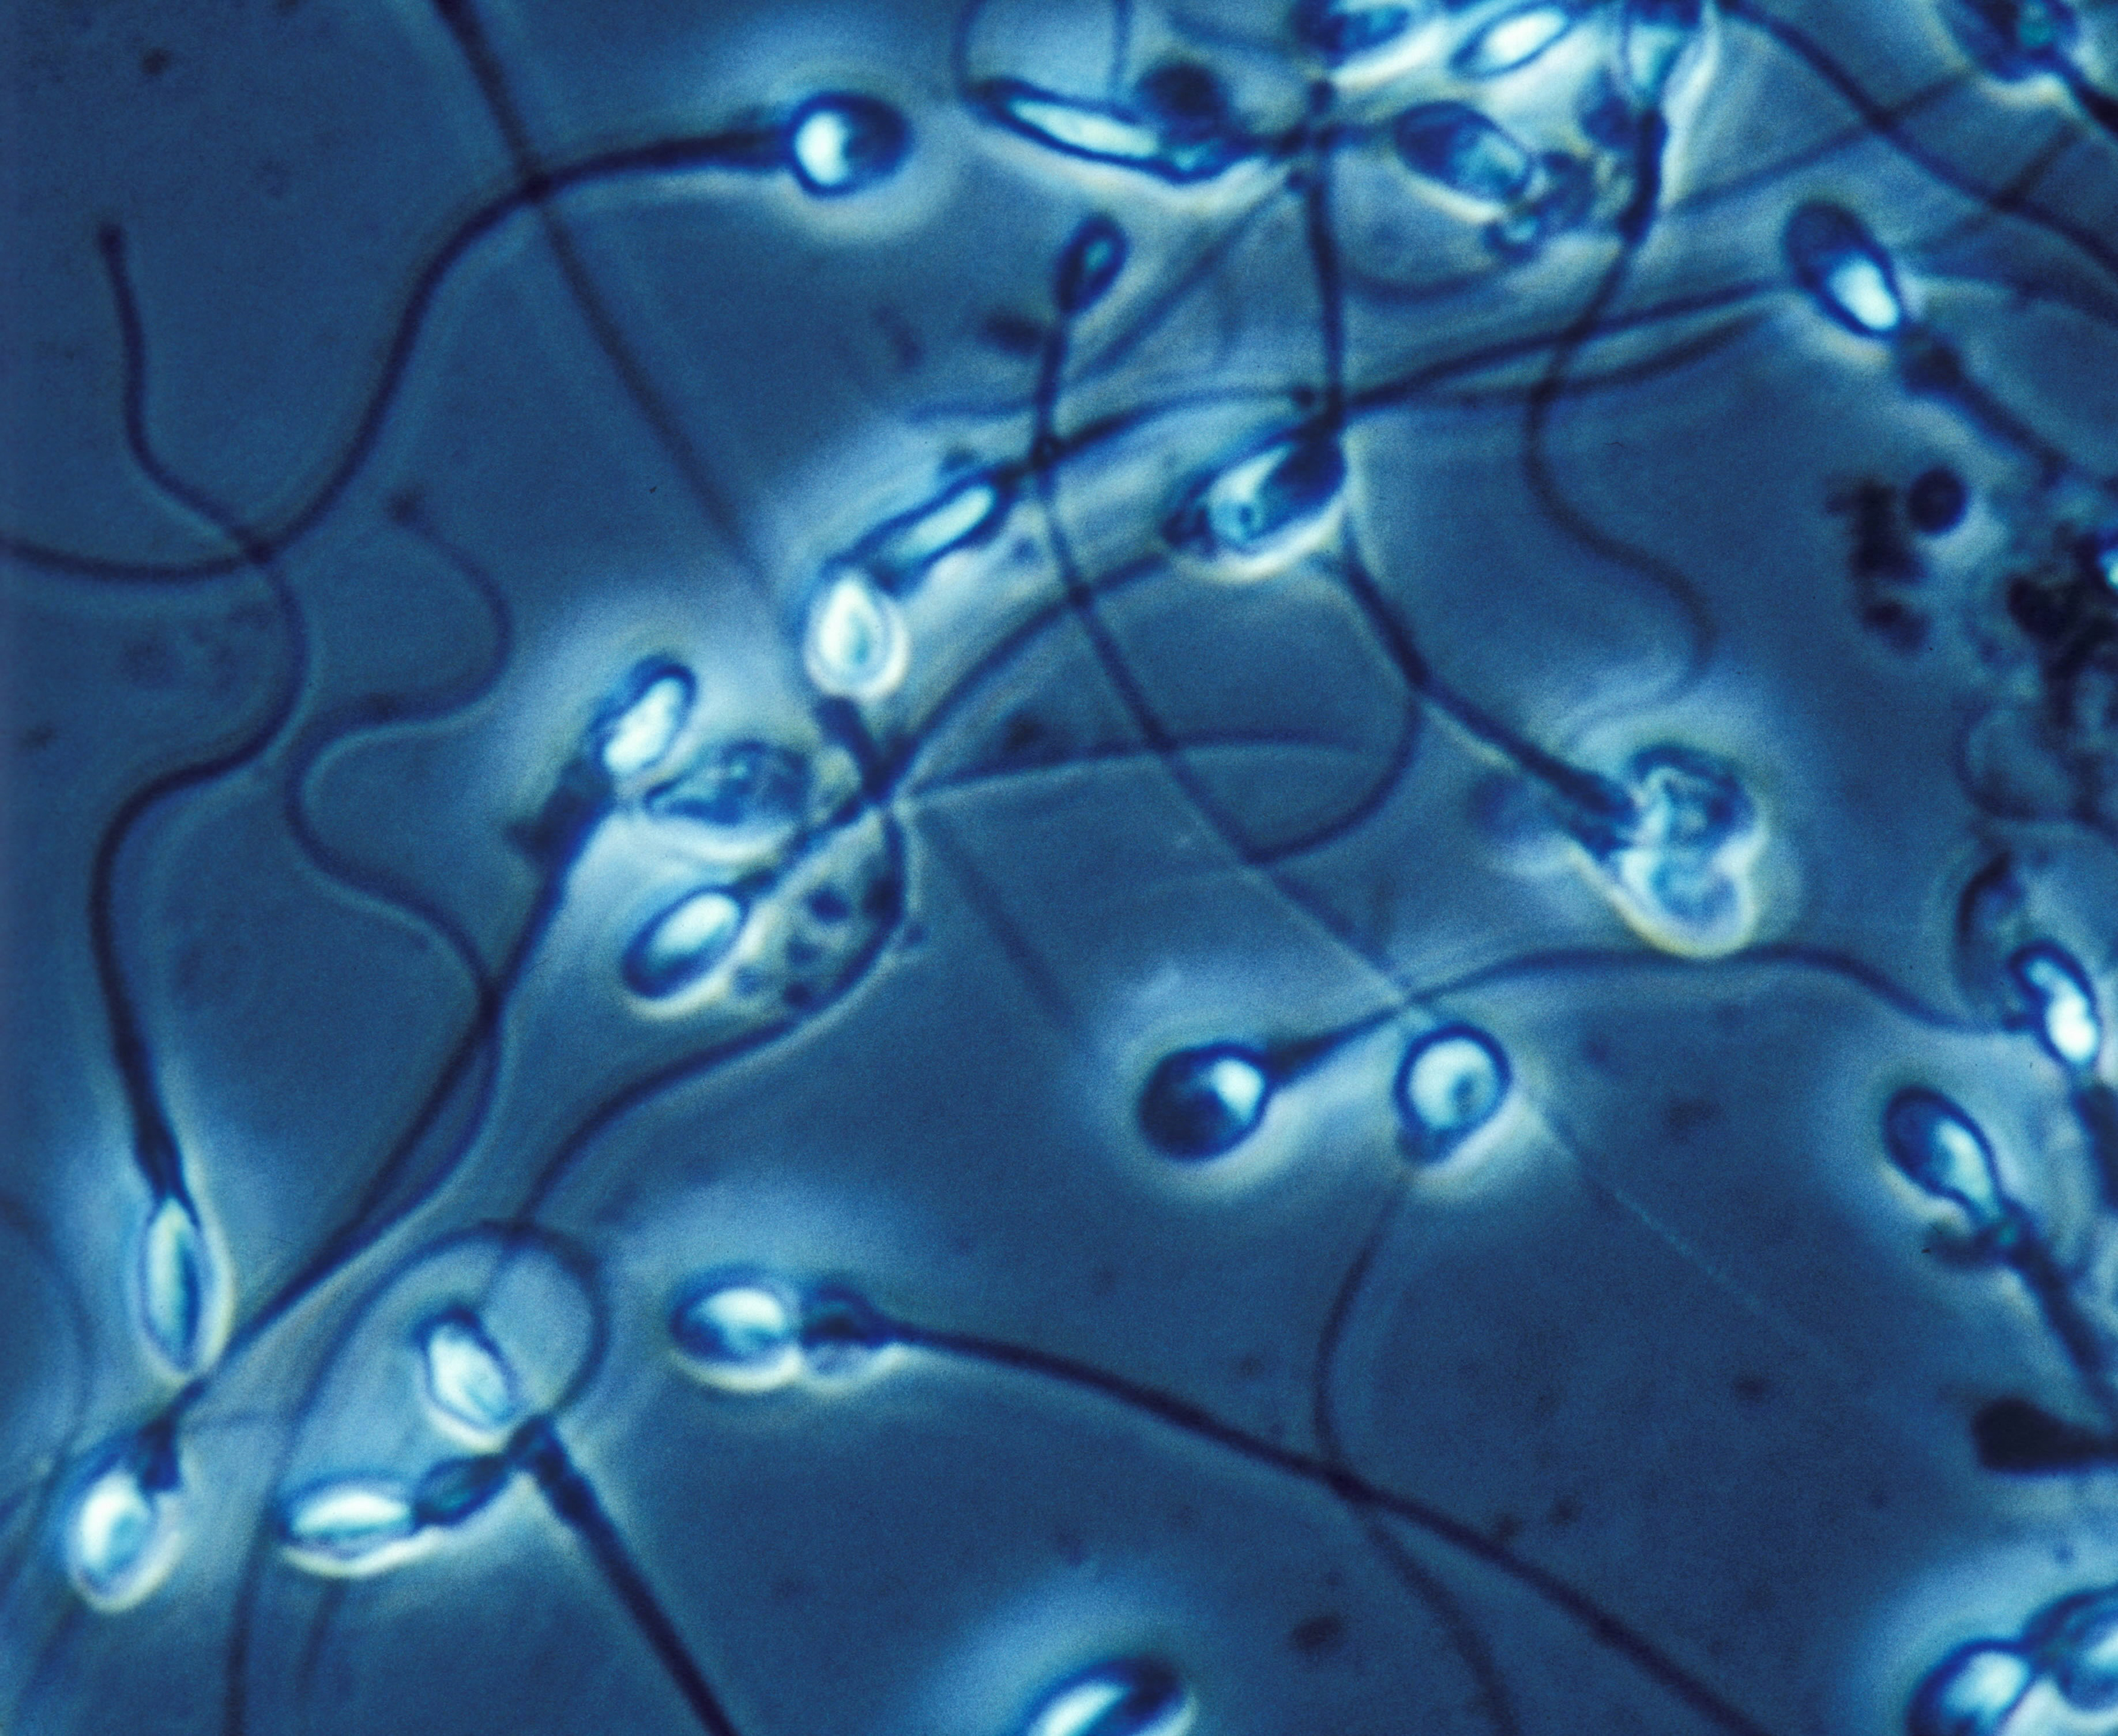 Poor quality Western diet kills sperm count and lowers male testosterone, study says